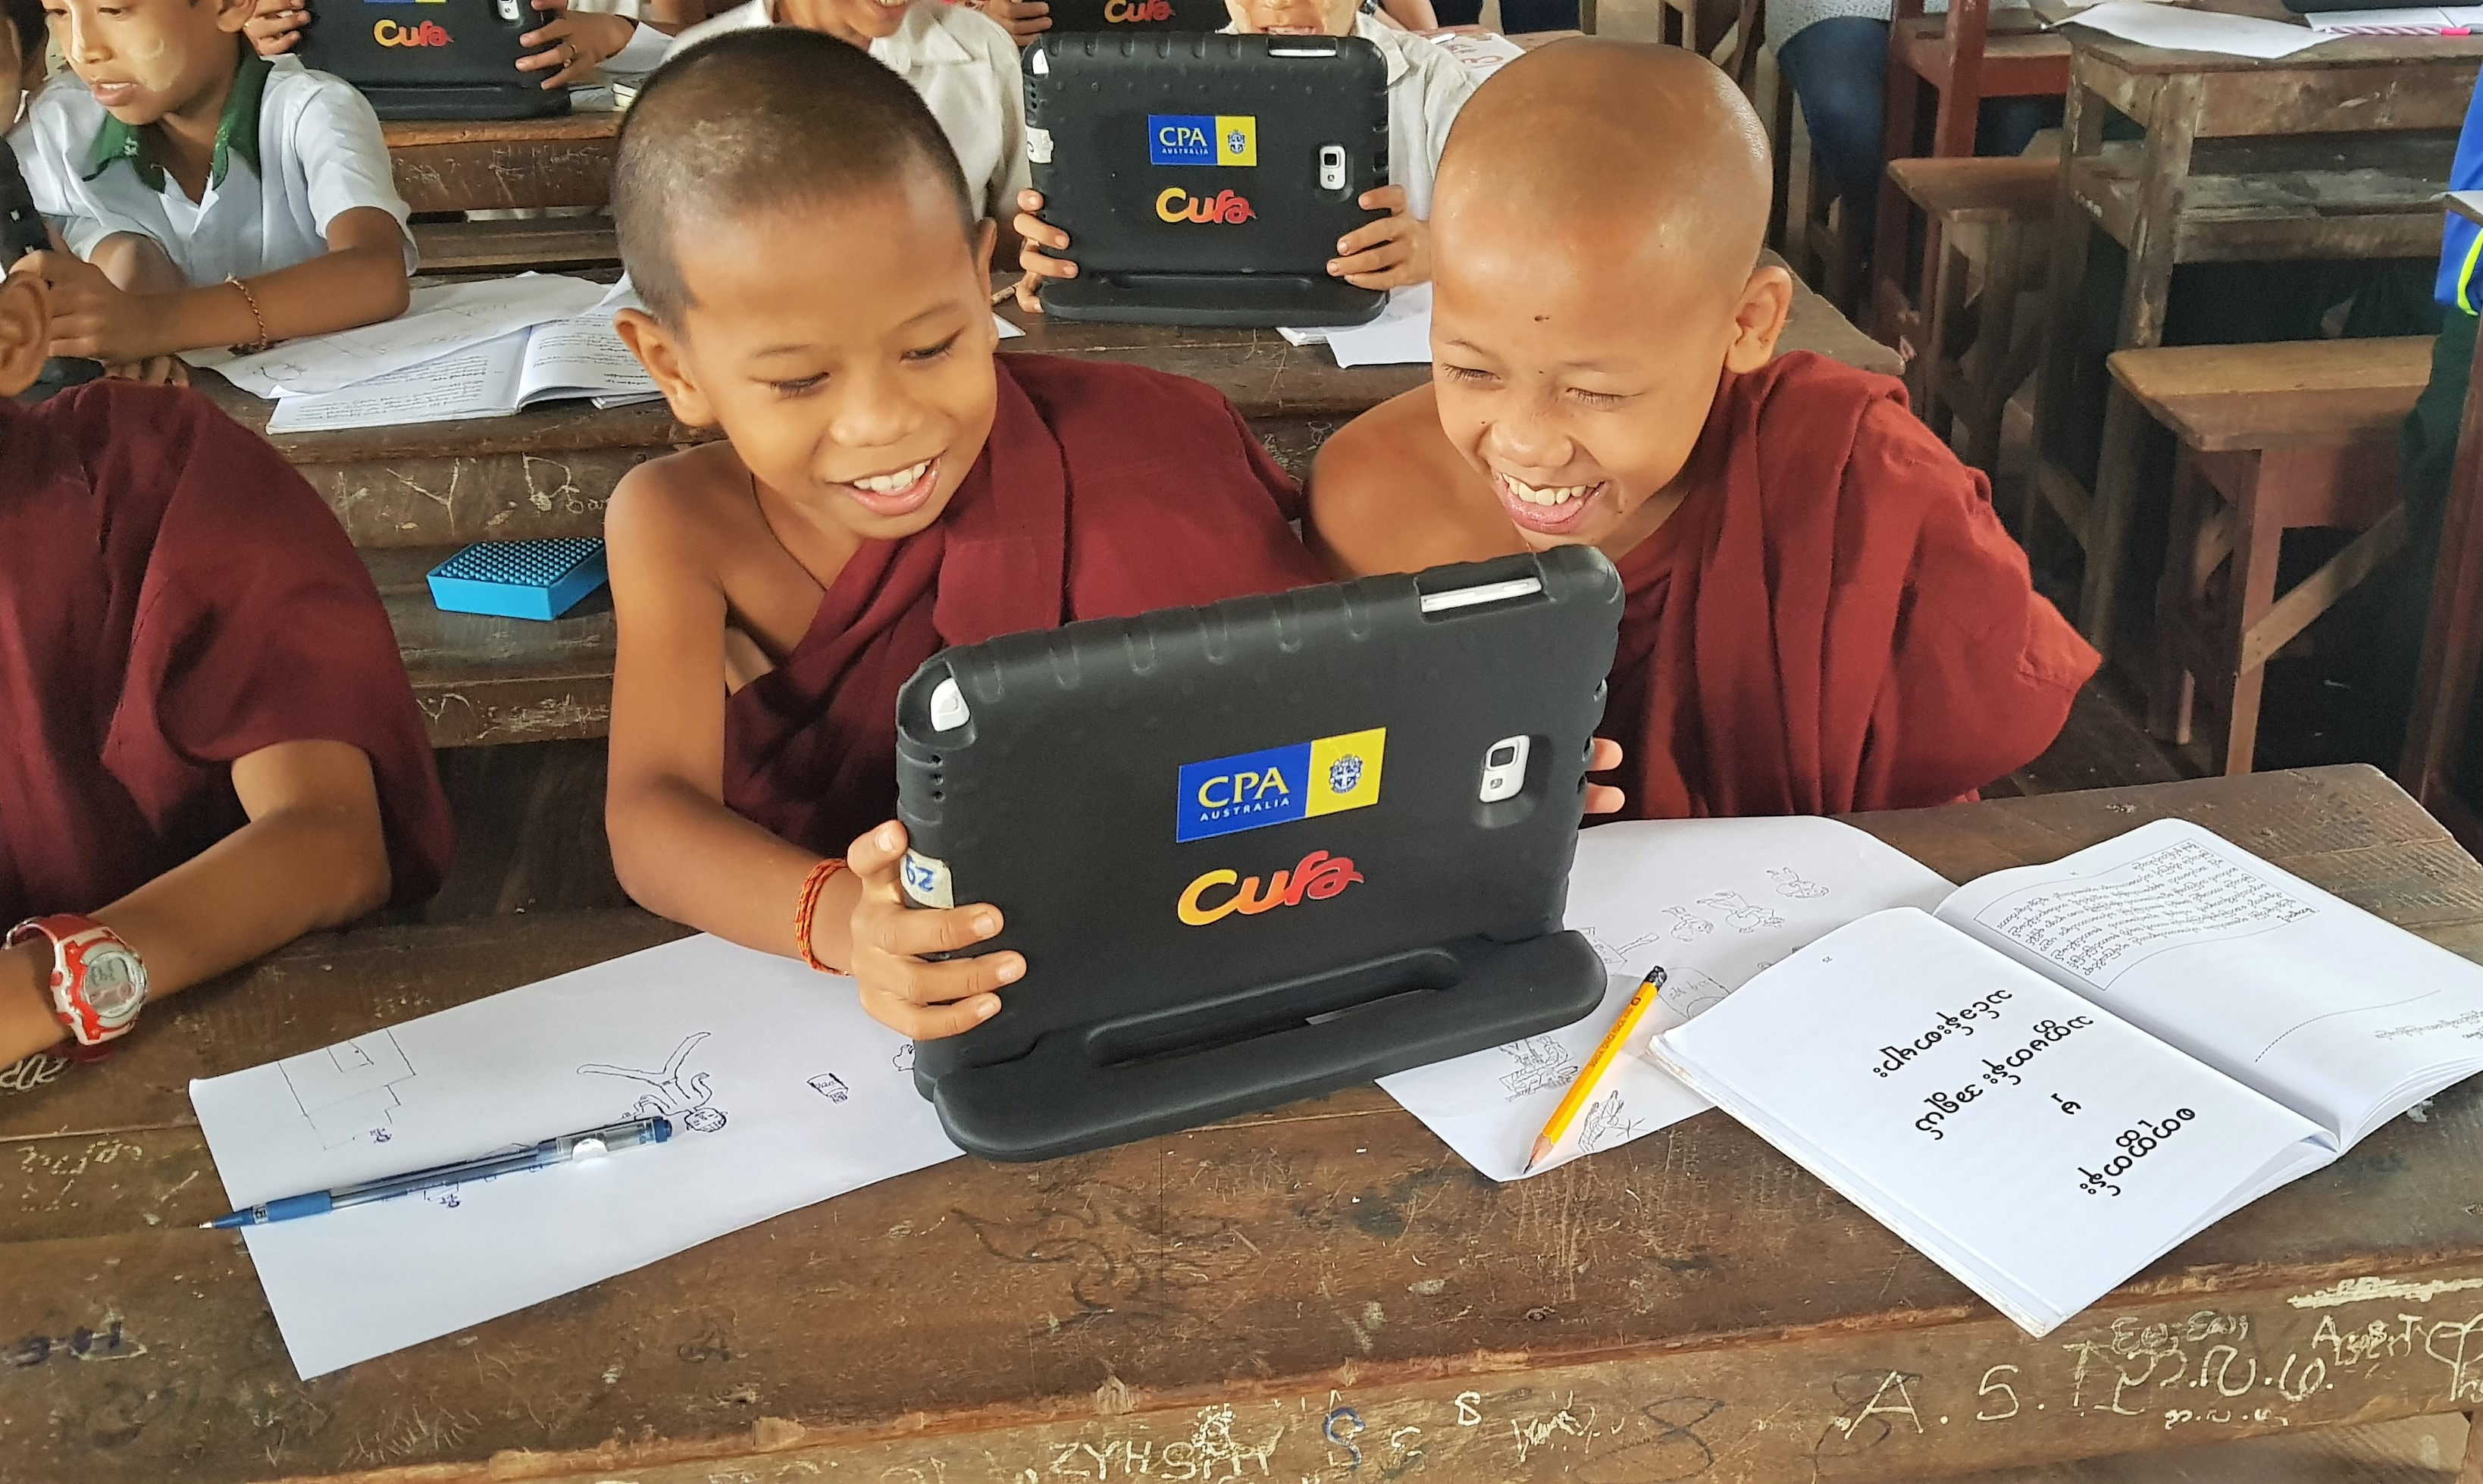 CFL teaches over 100,000 students Myanmar